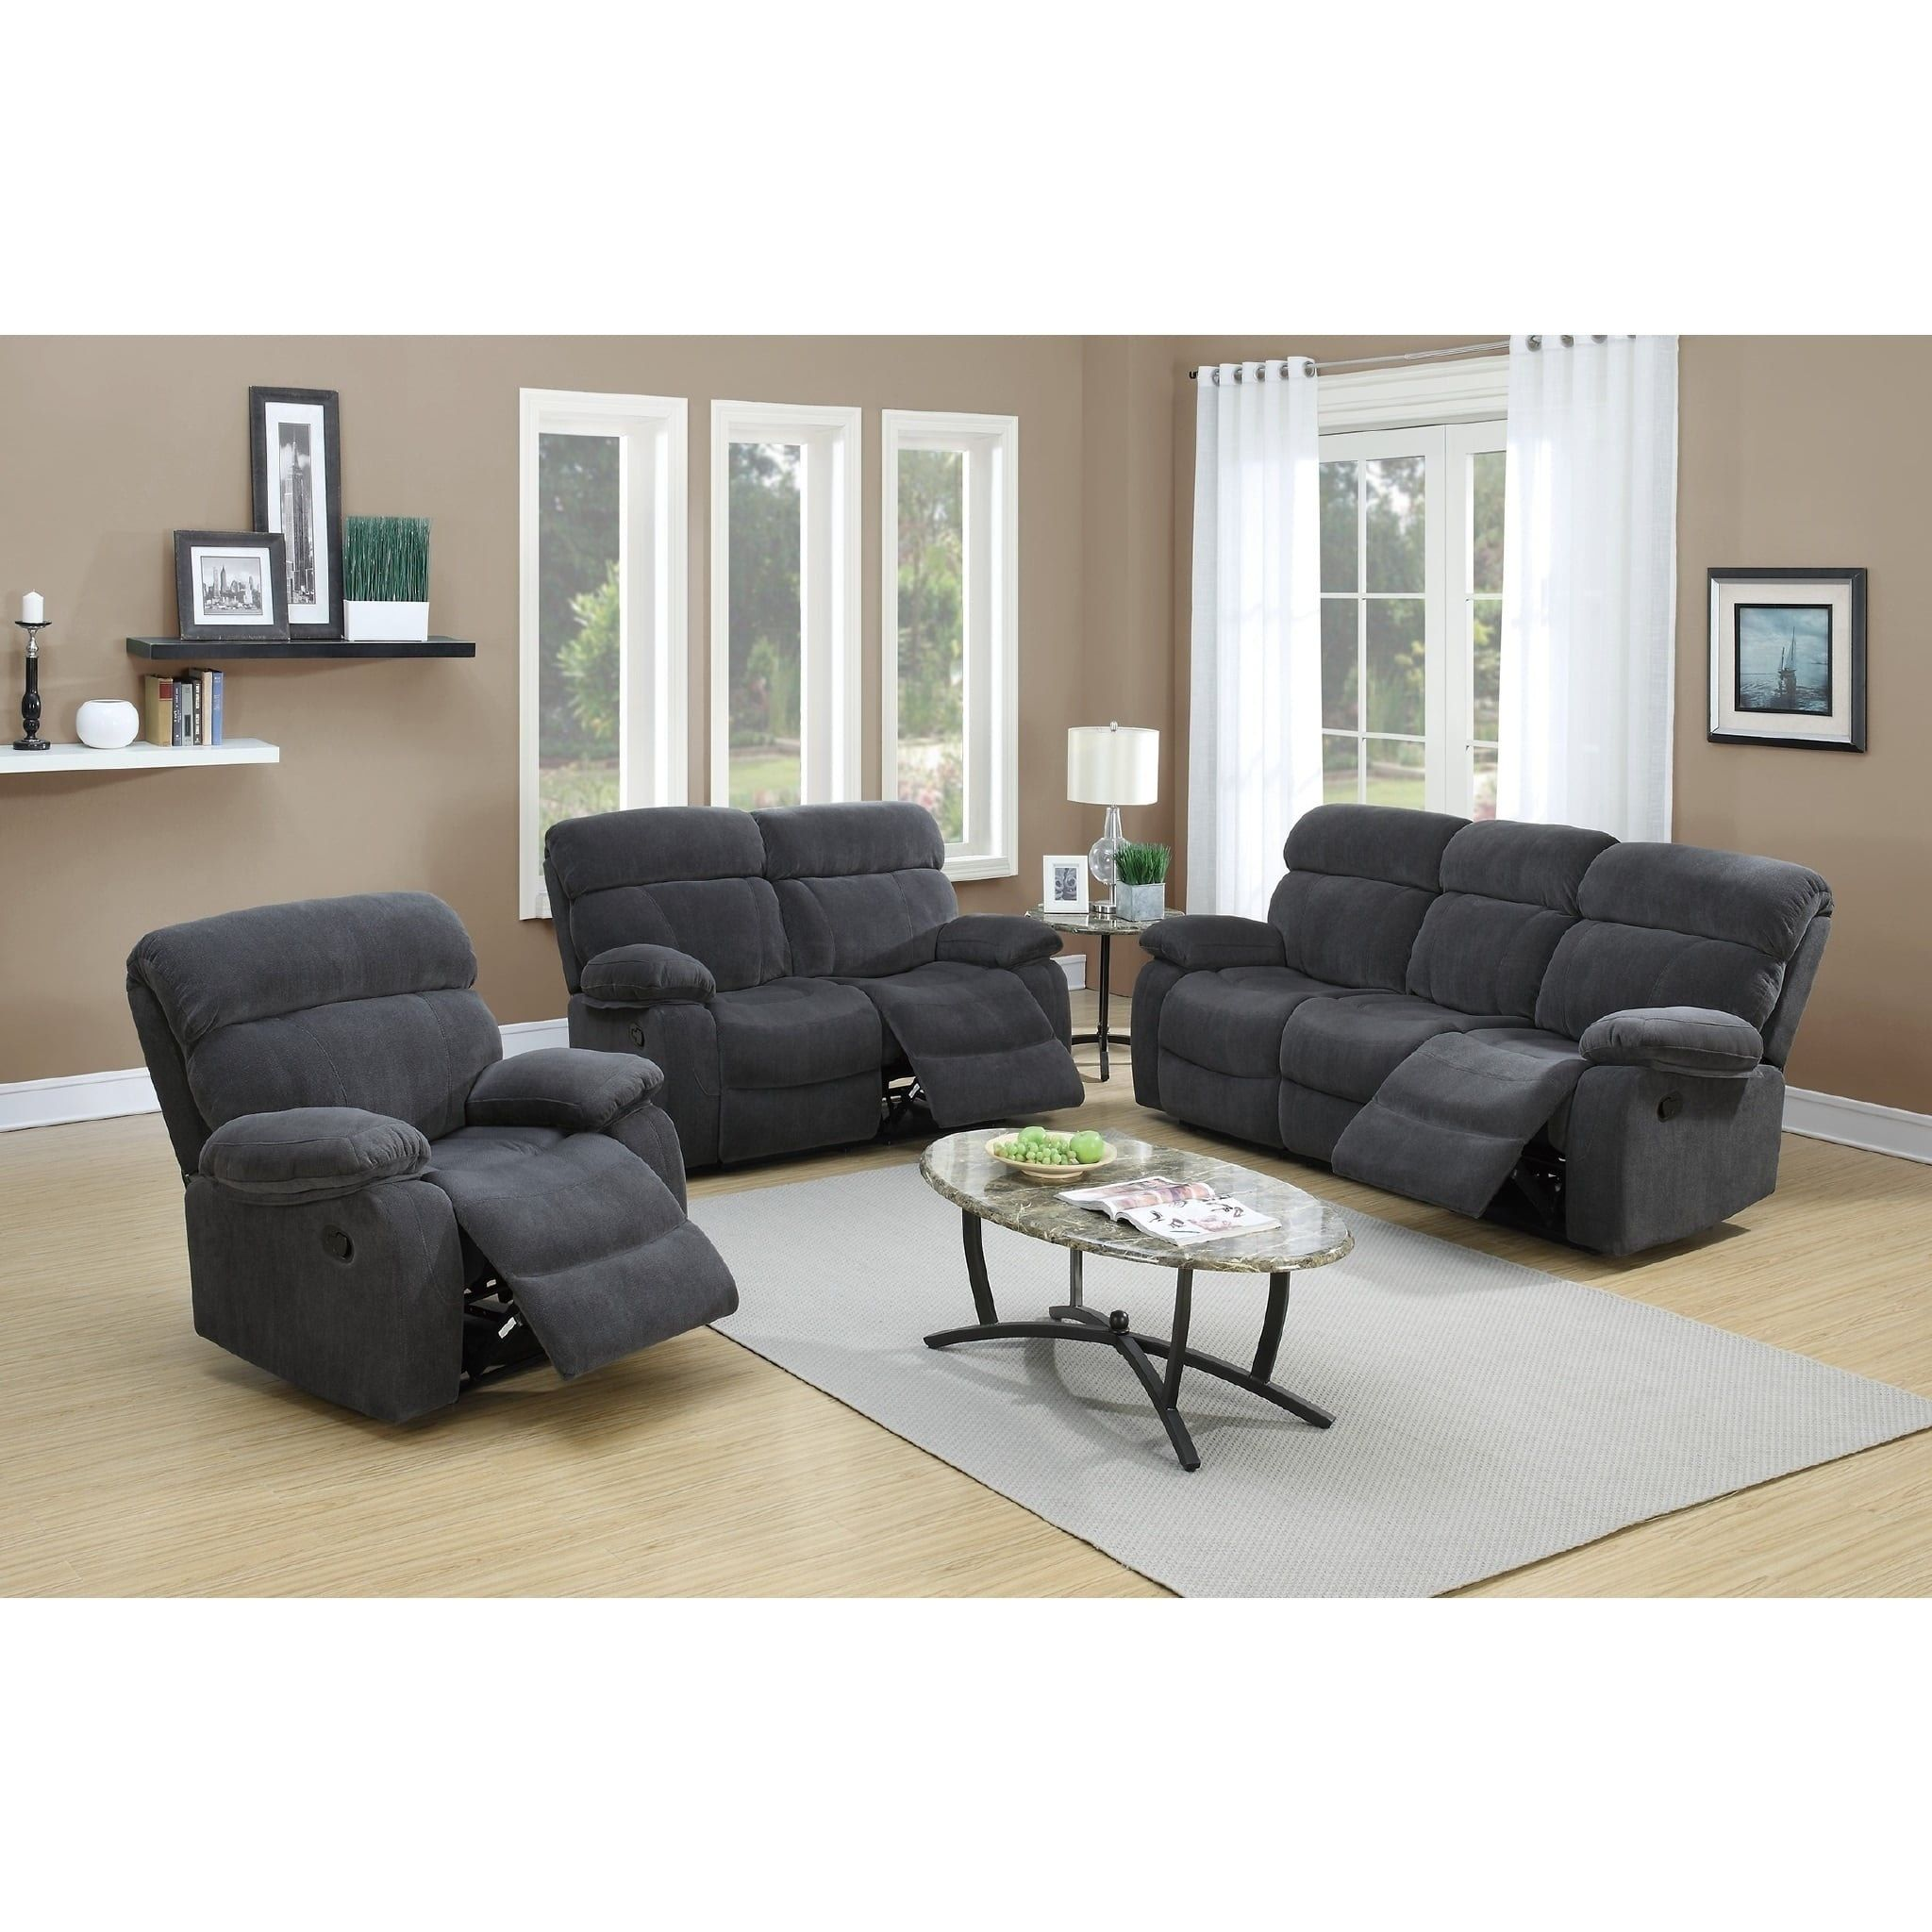 Vivi Motion 3 Piece Living Room Set Grey